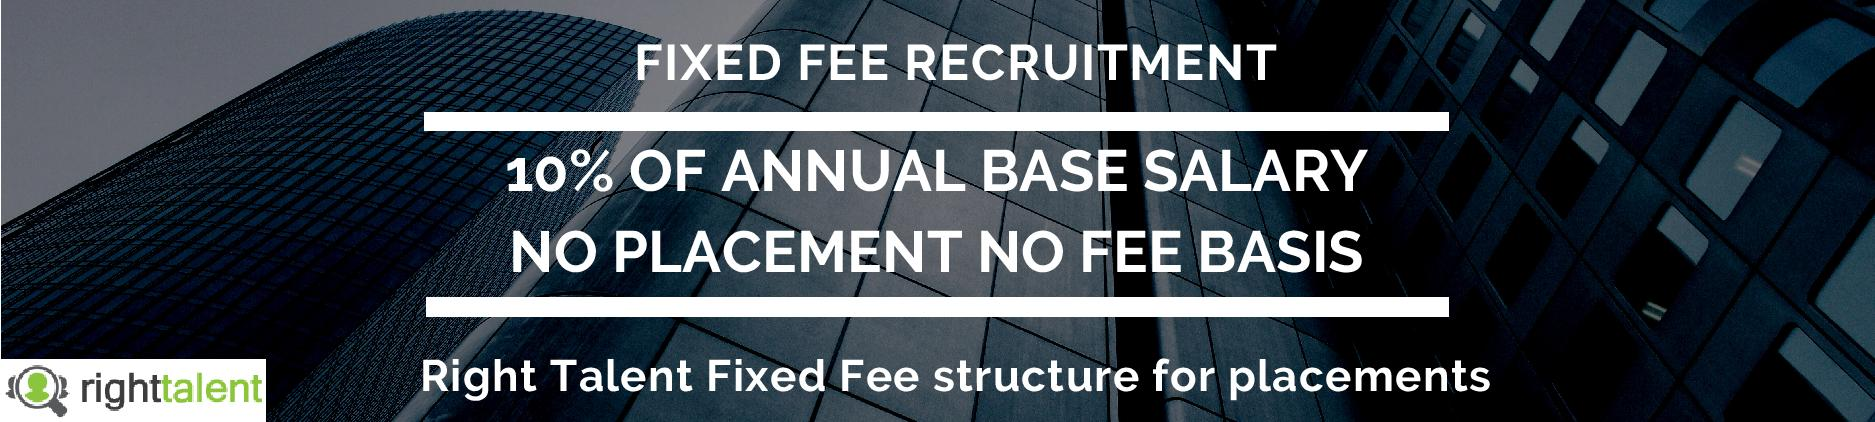 Fixed Fee Recruitment, Flat Fee Recruitment - Right Talent